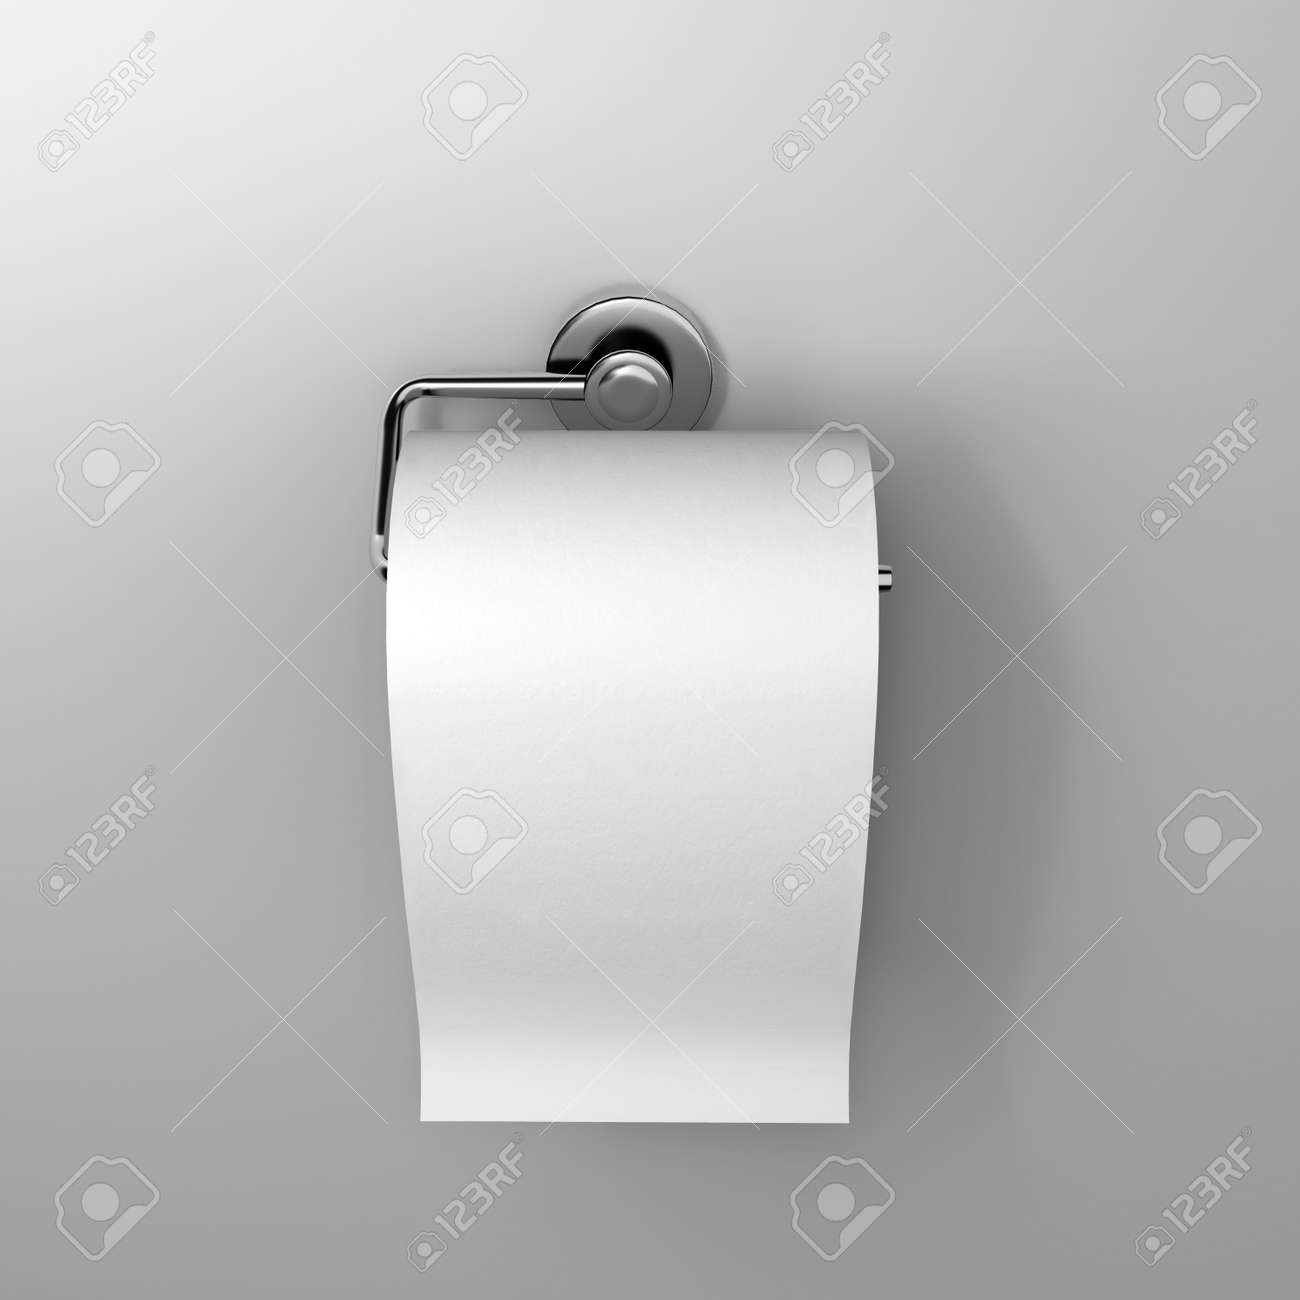 Roll Of White Toilet Paper Hanging On A Chrome Toilet Roll Holder